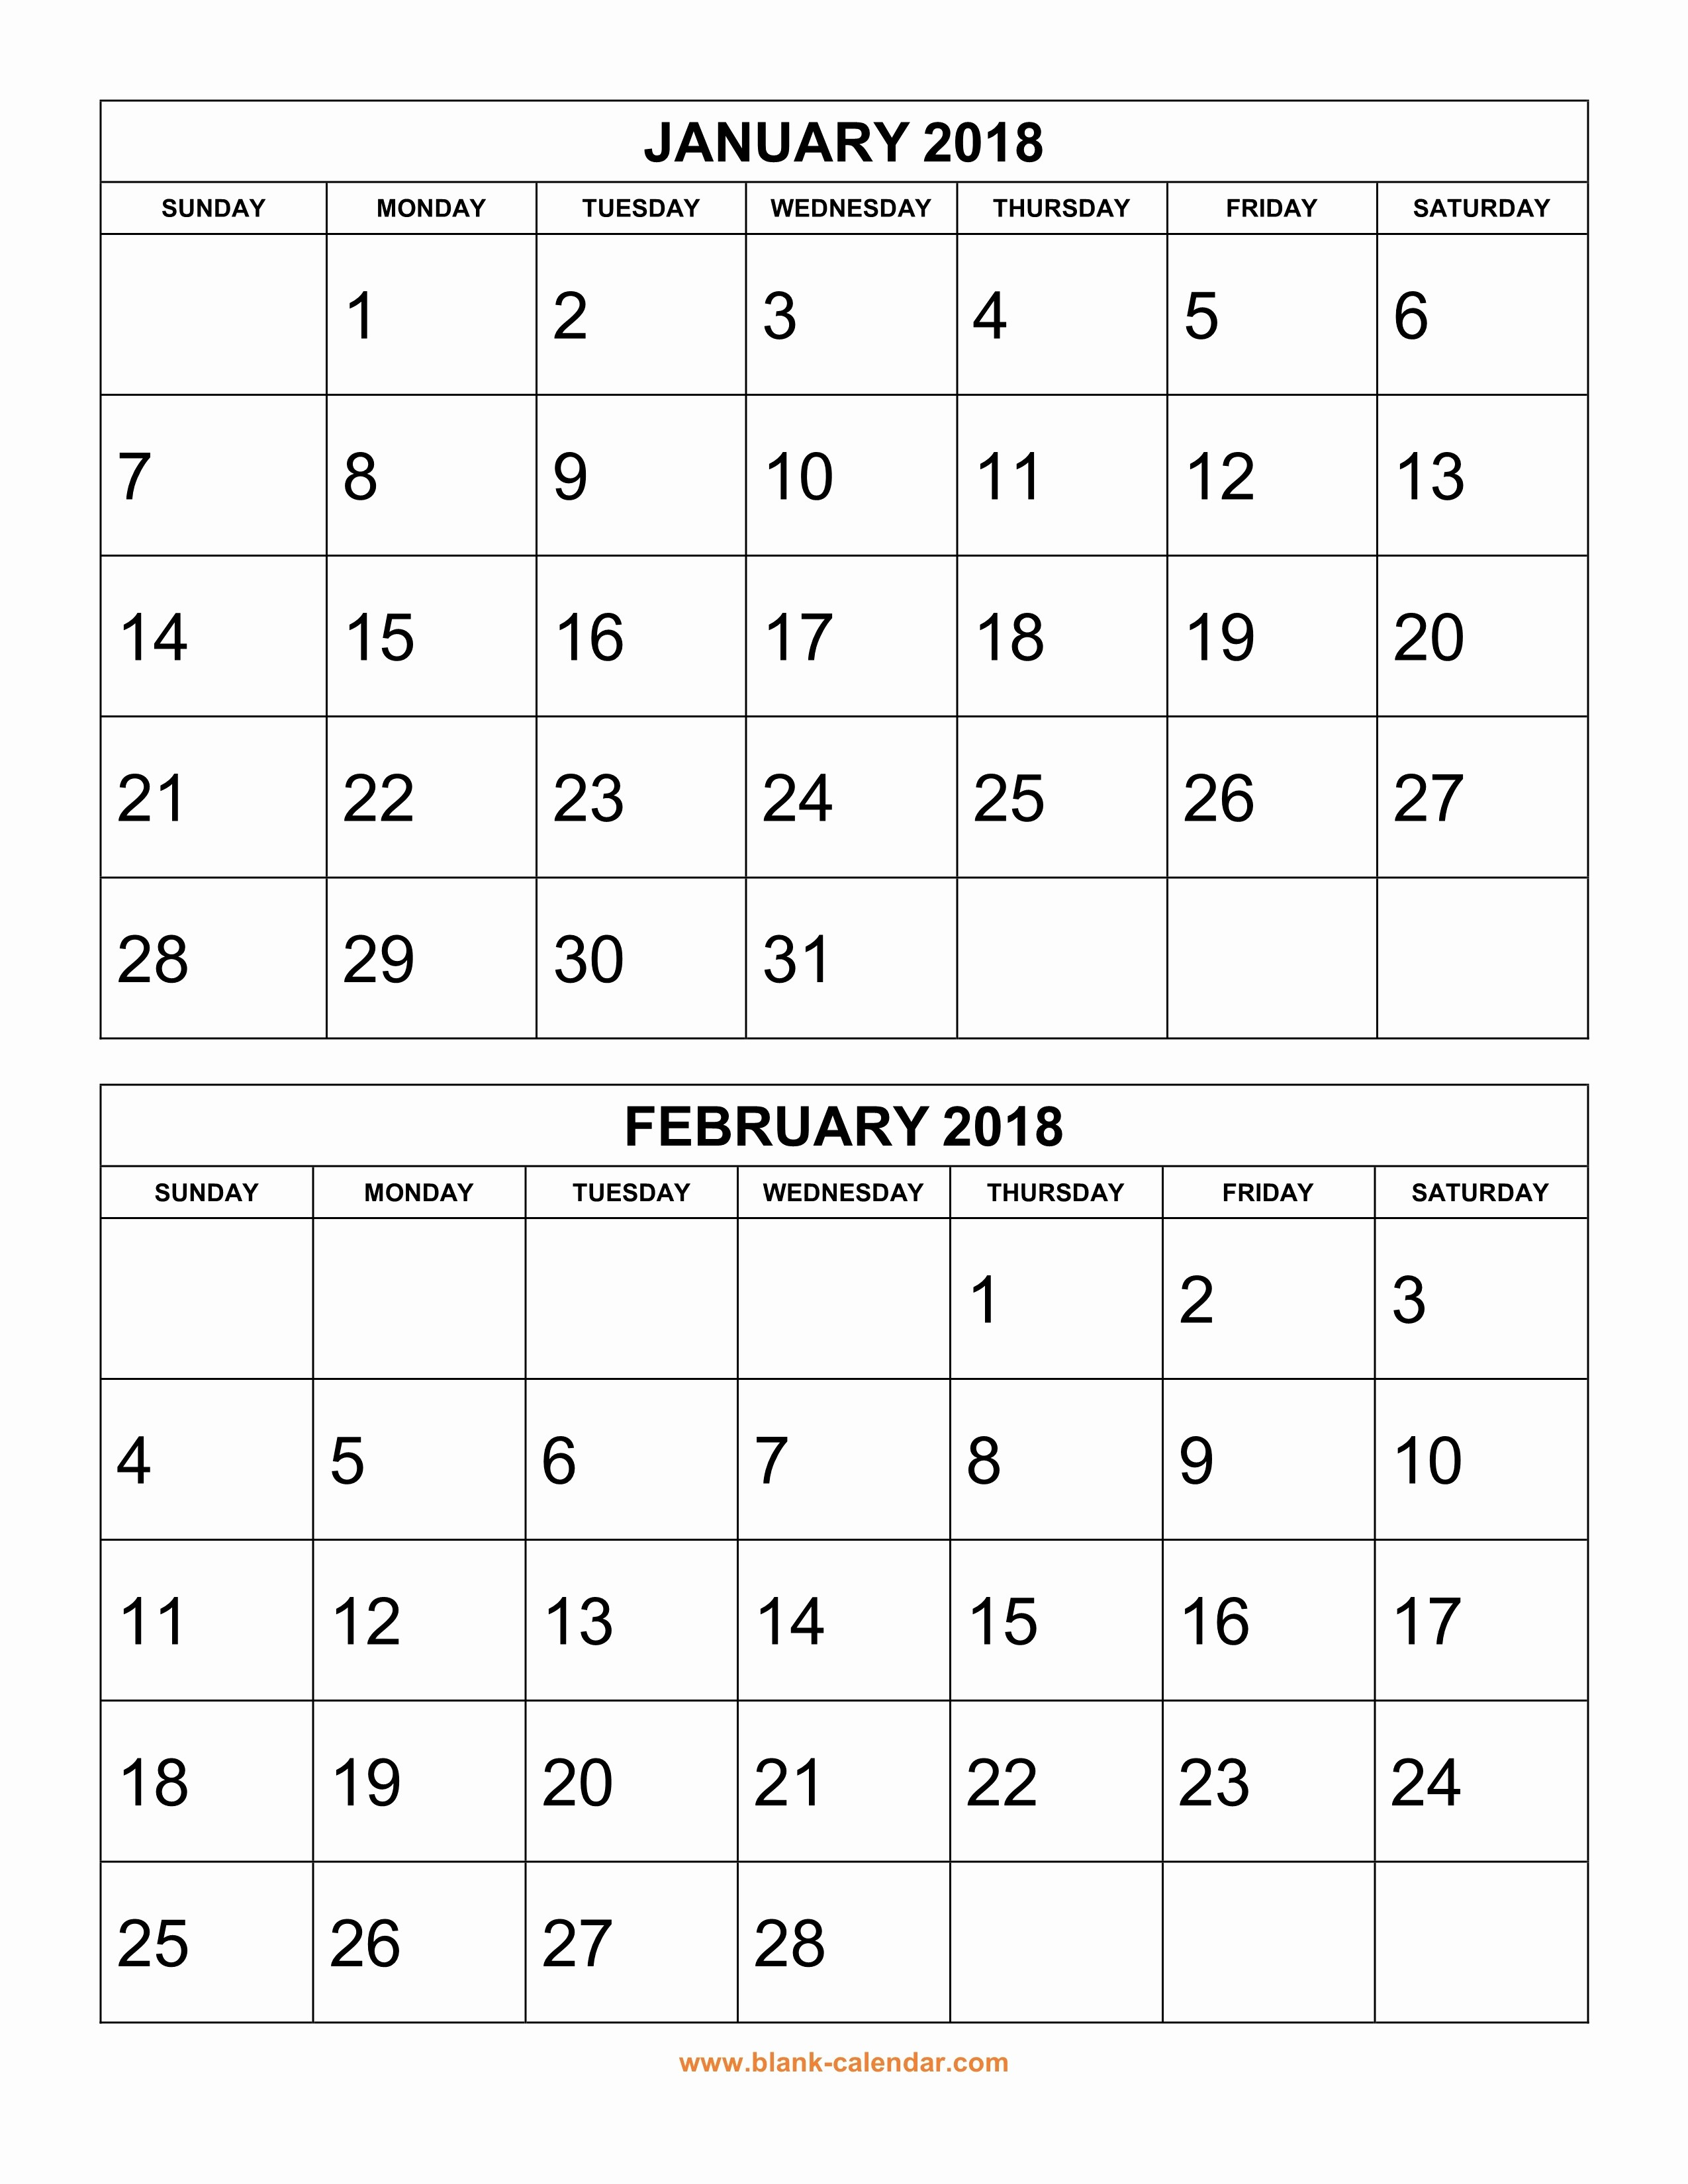 Calendar One Day Per Page Unique Free Printable Monthly Calendar 2 Months Per Page